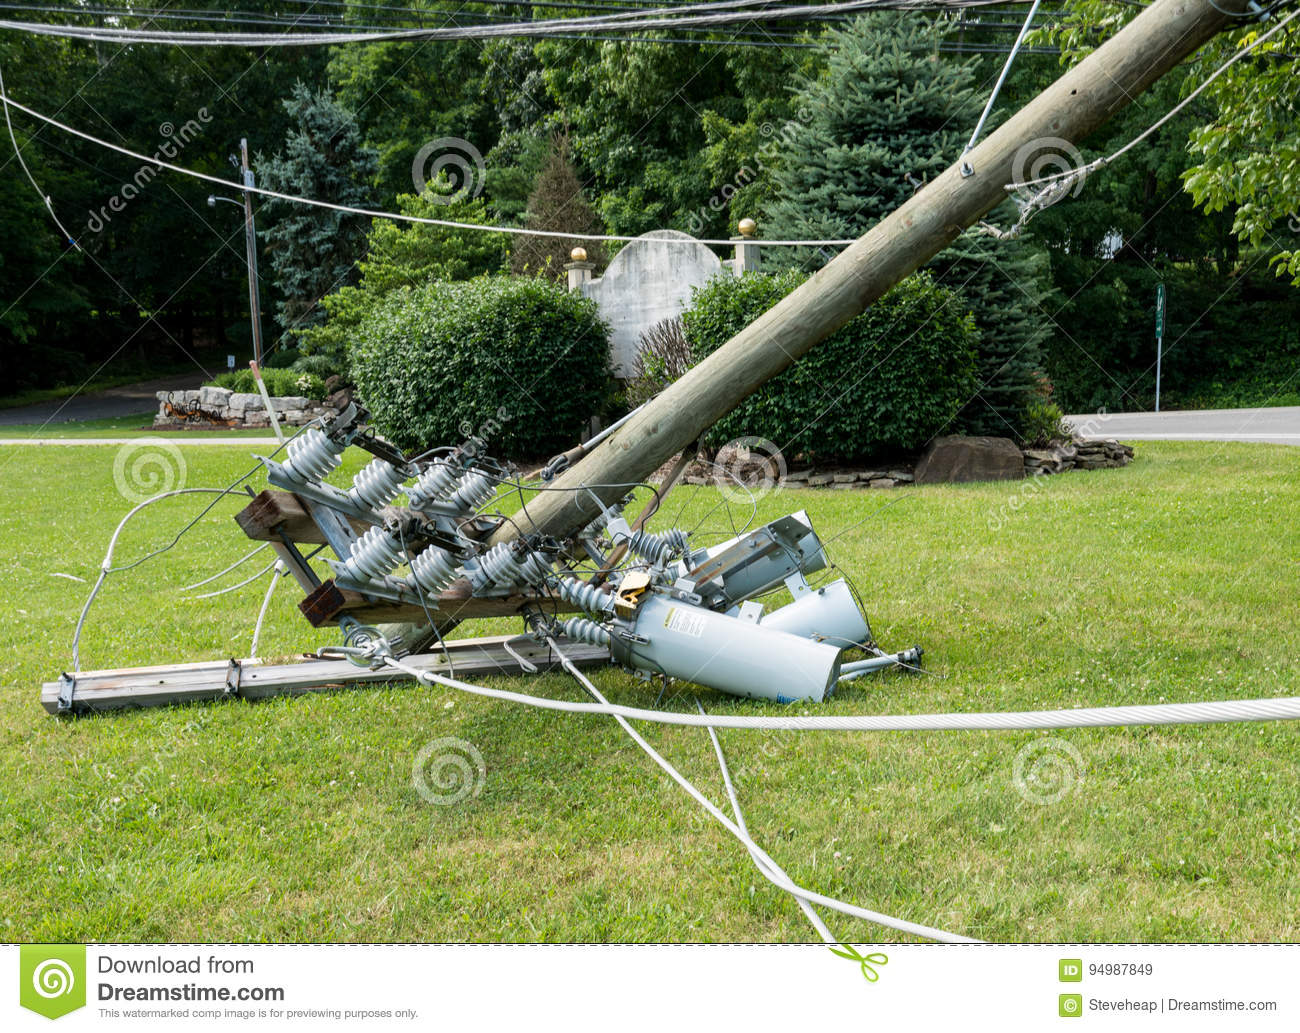 Snapped and downed power post and line after storm